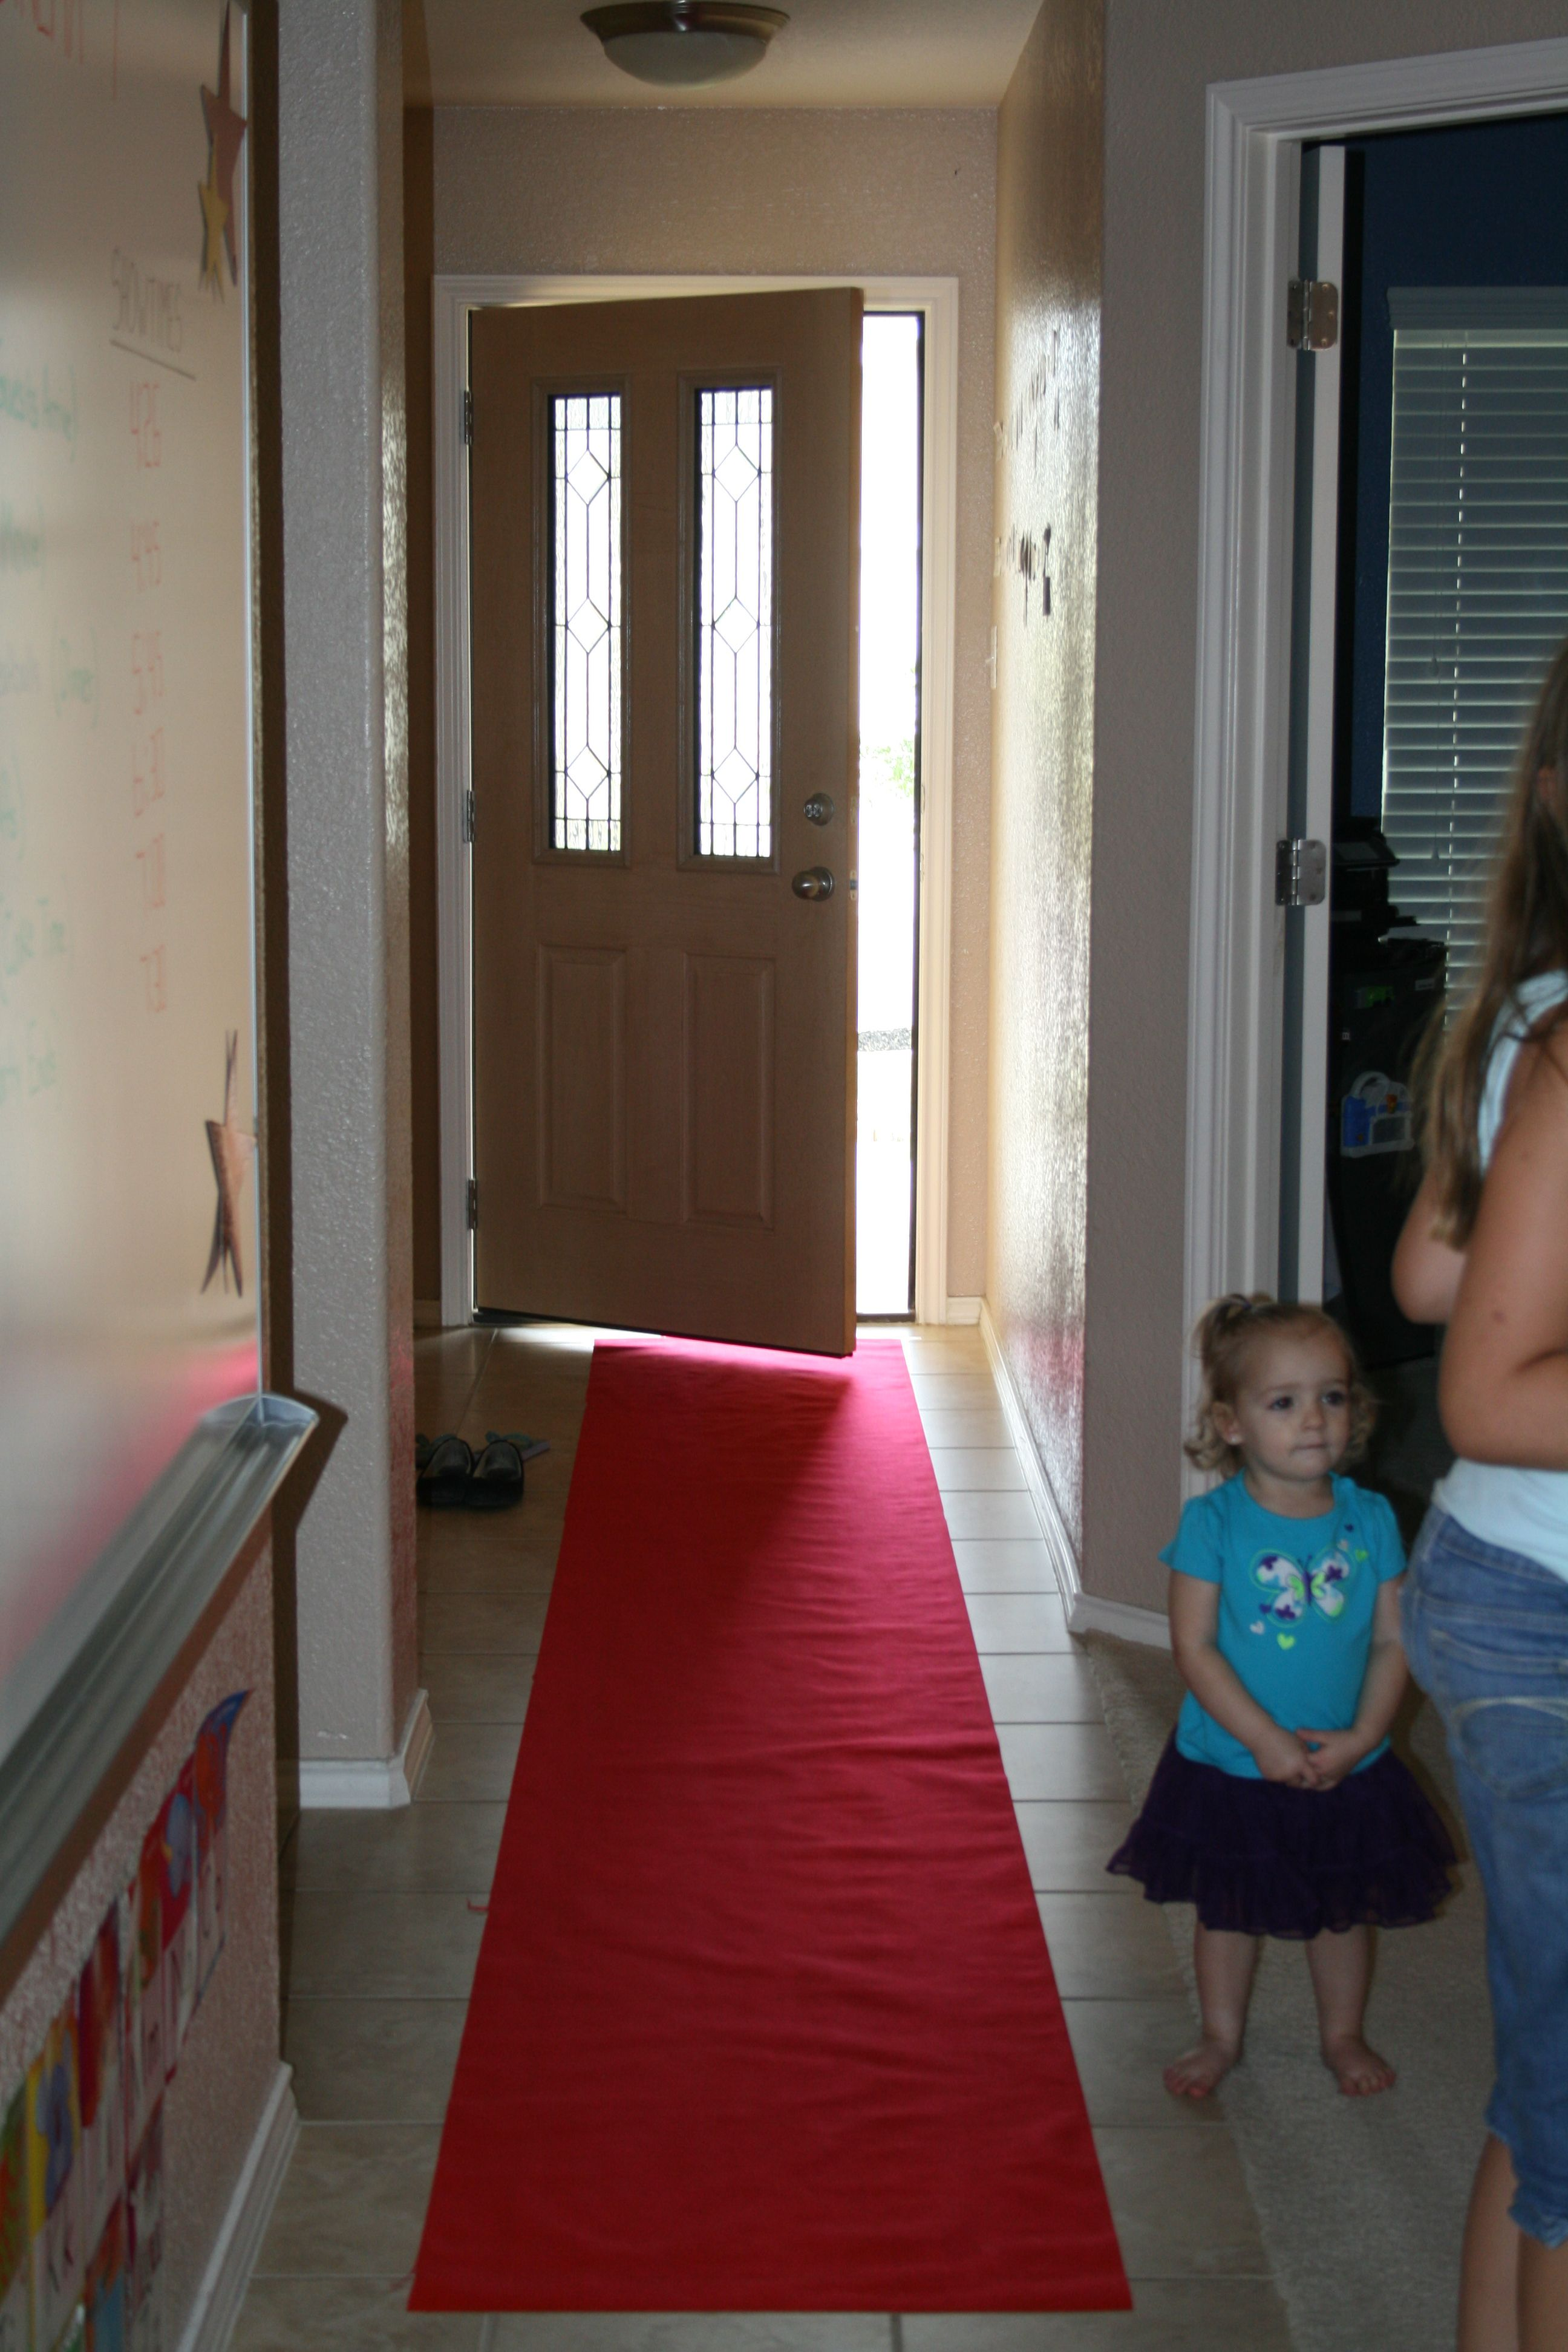 Movie Theater themed birthday party we rolled out the red carpet